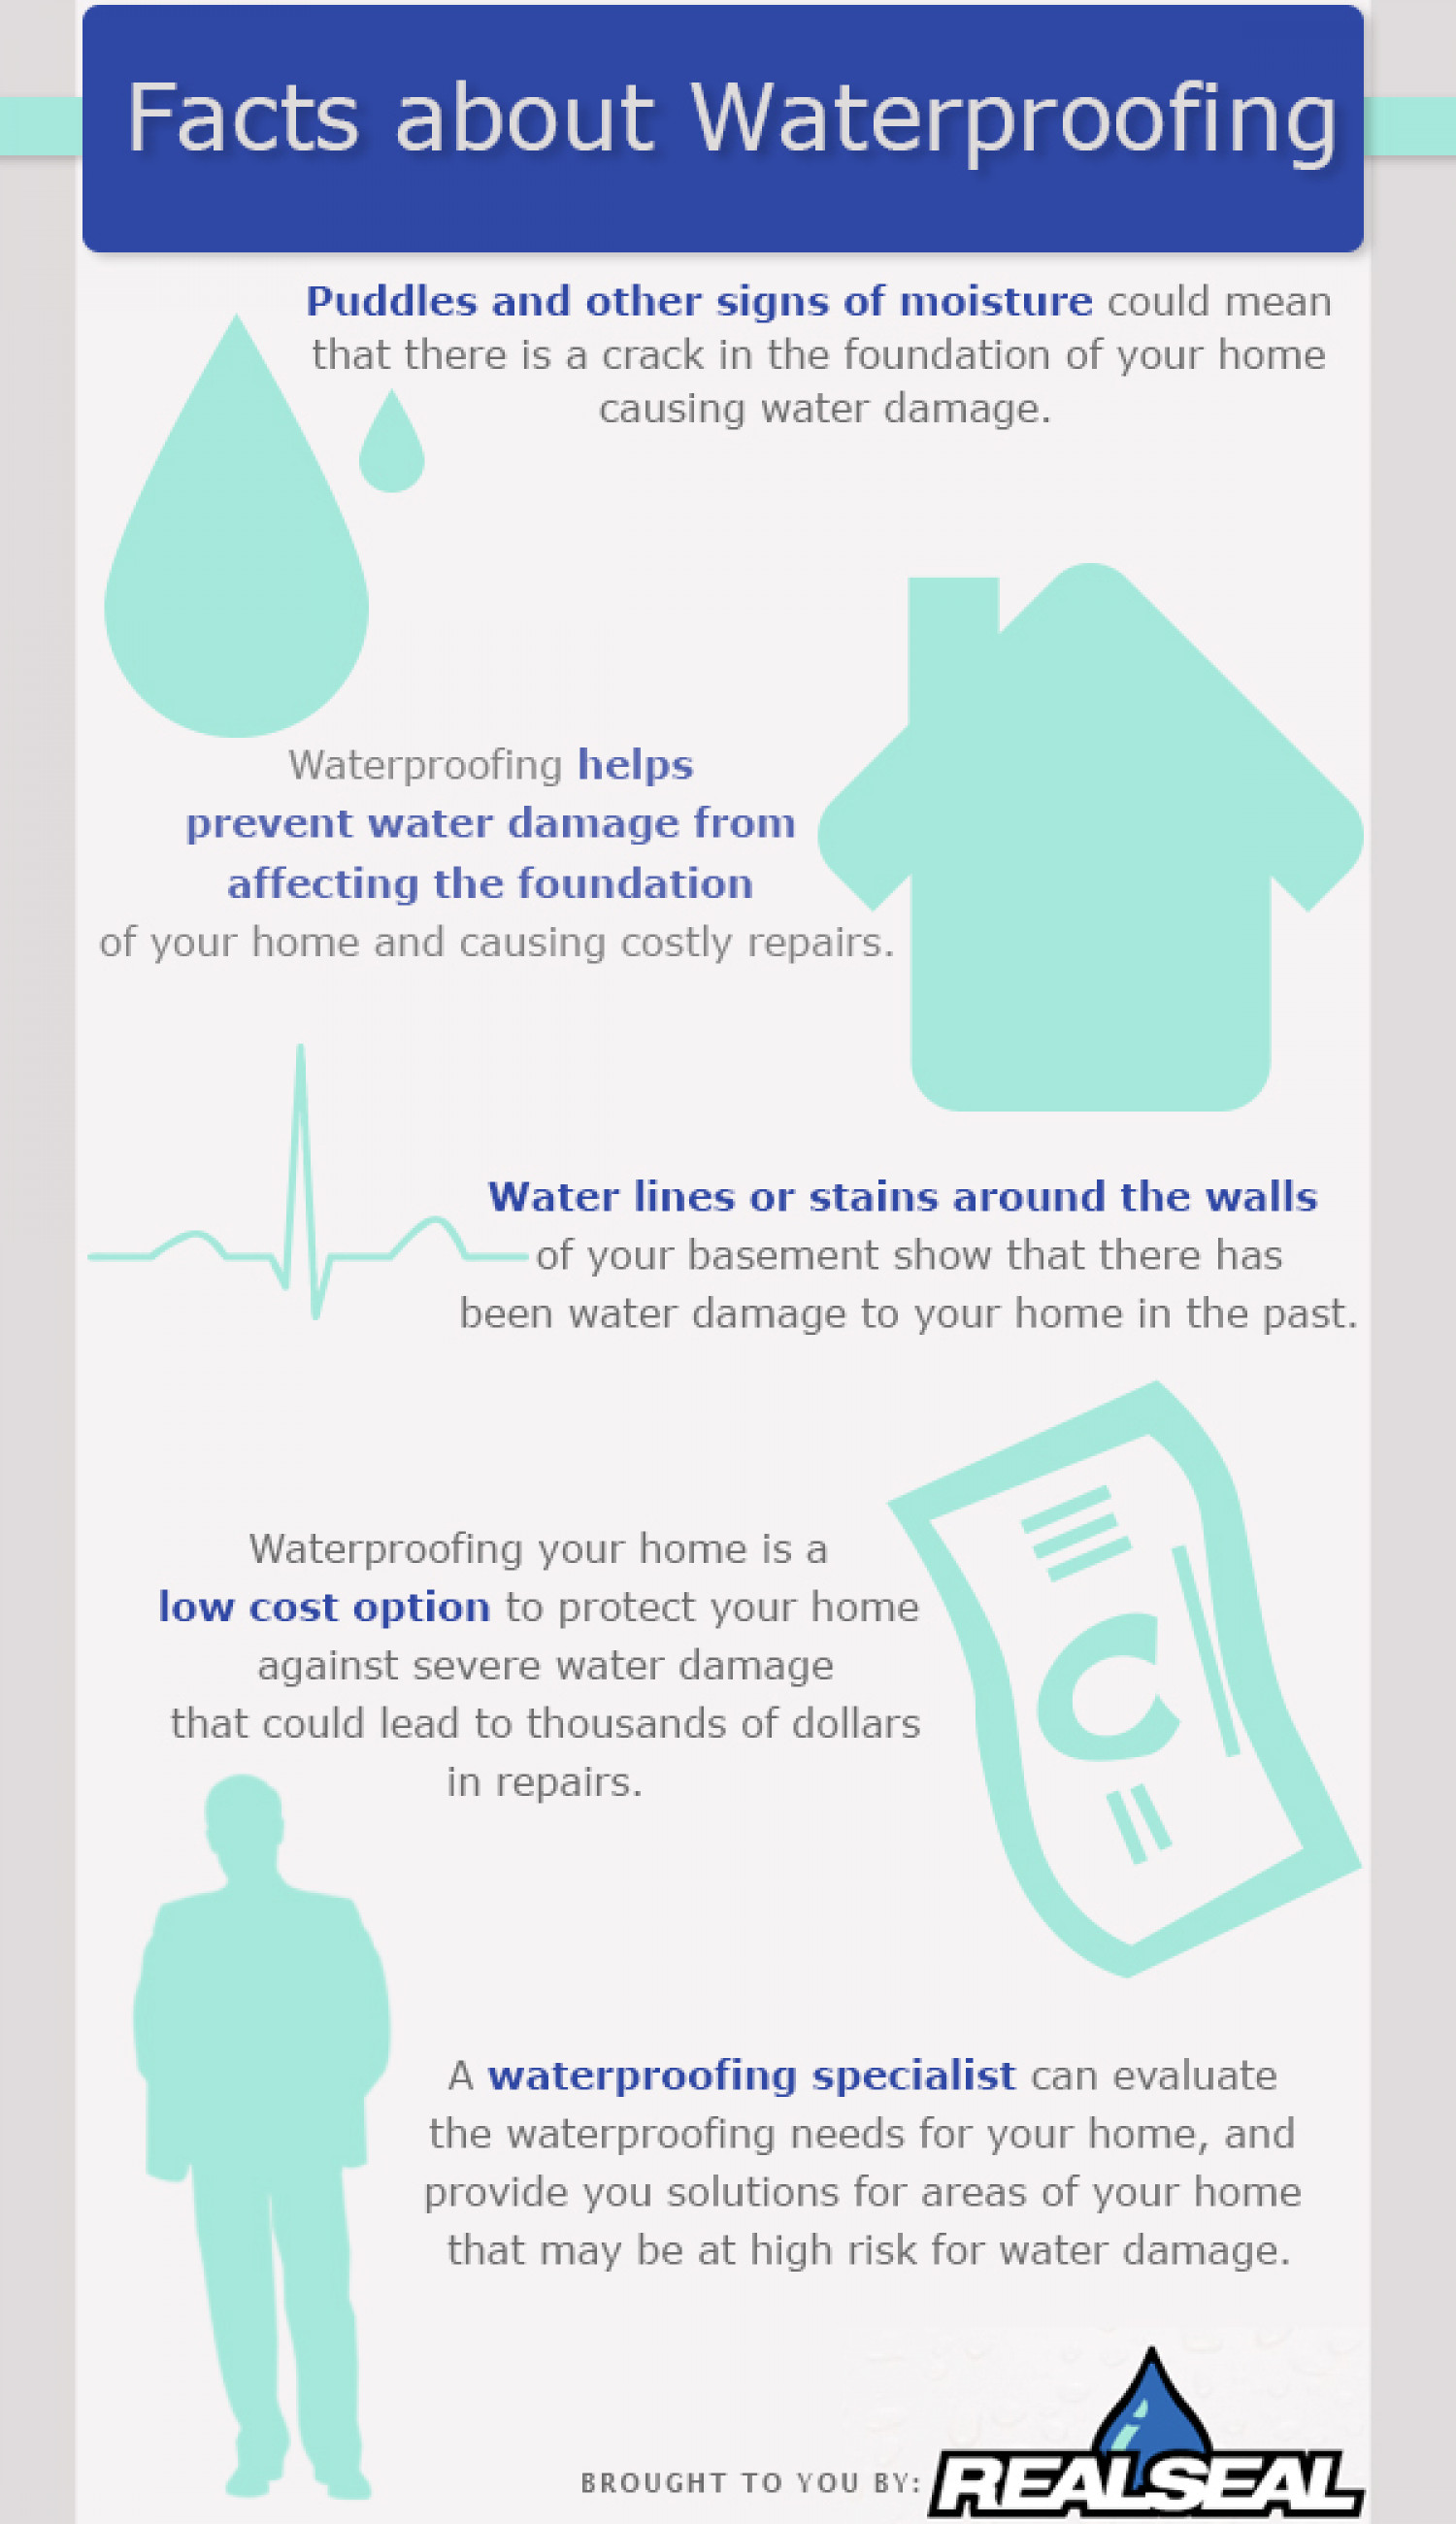 Facts About Waterproofing Infographic